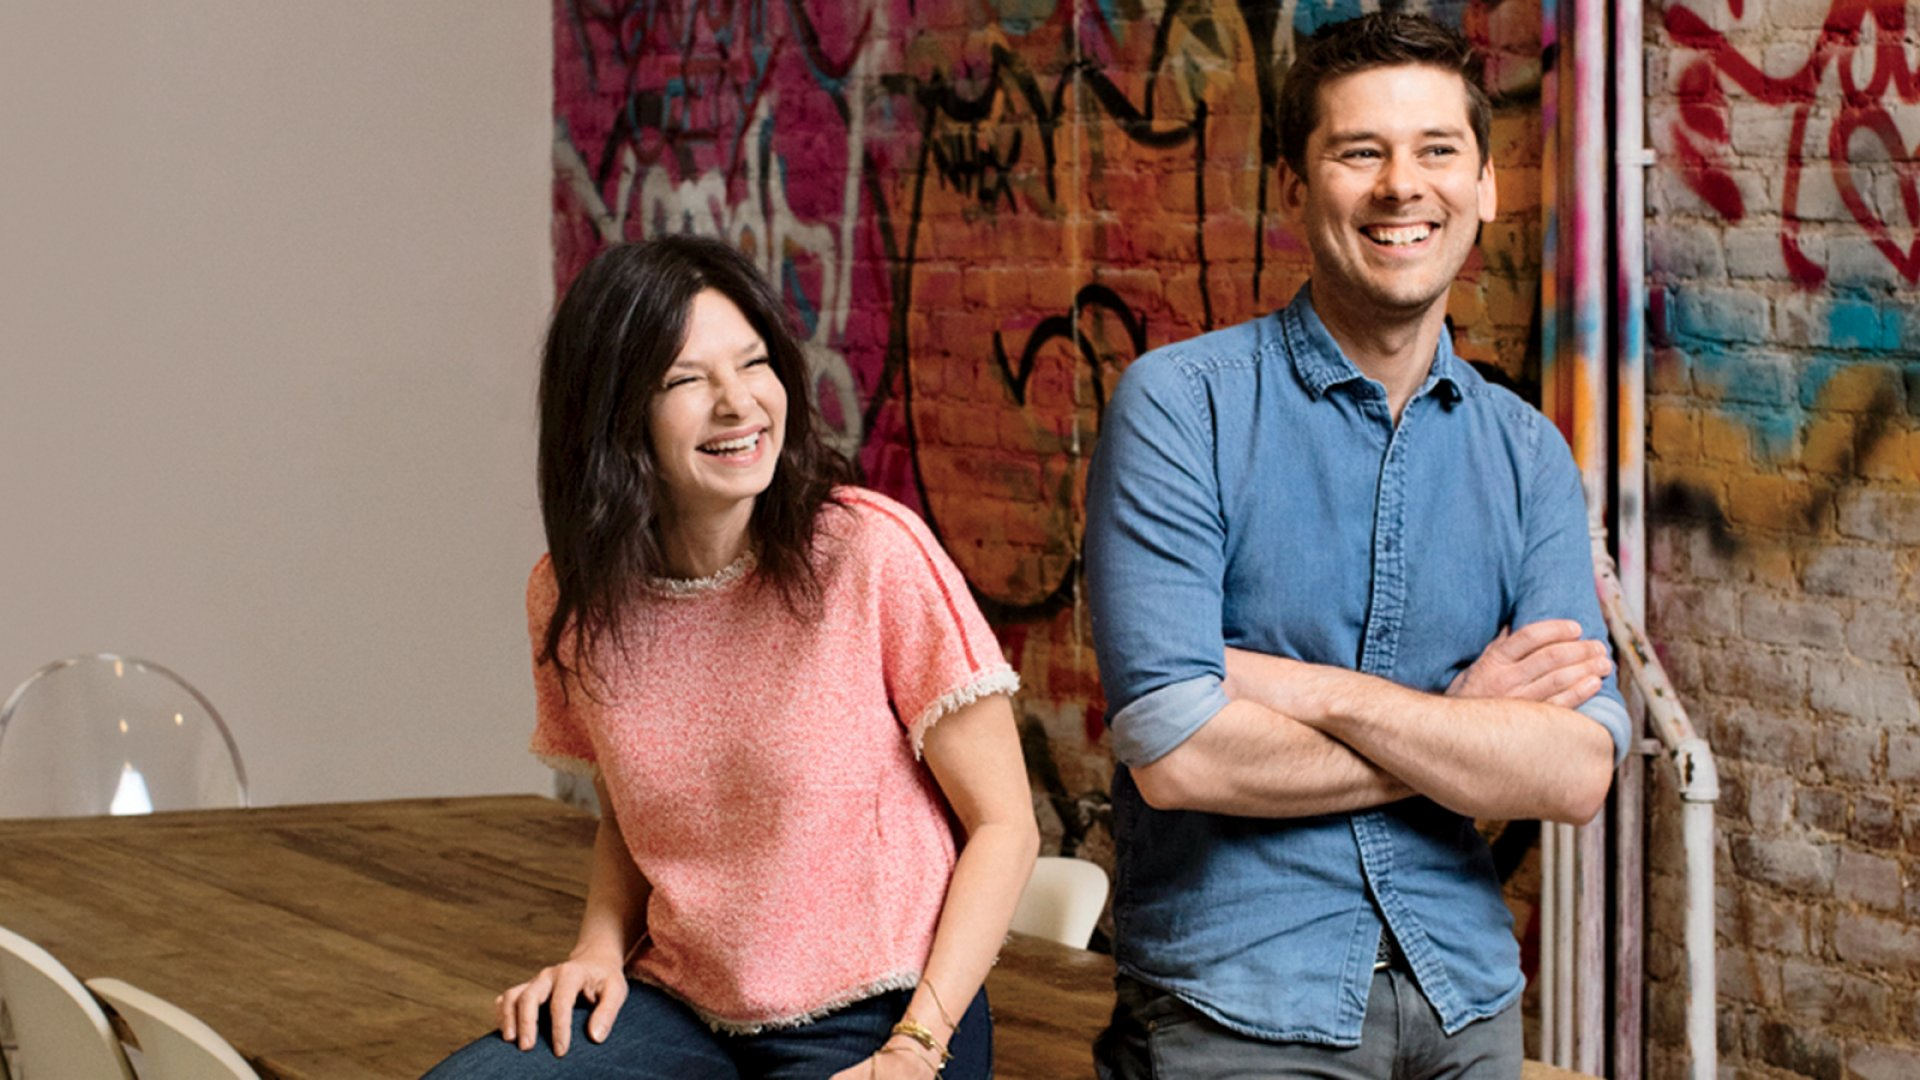 Michelle Gauthier and Justin Schwartz in her apartment, from which they run Mulberry & Vine.